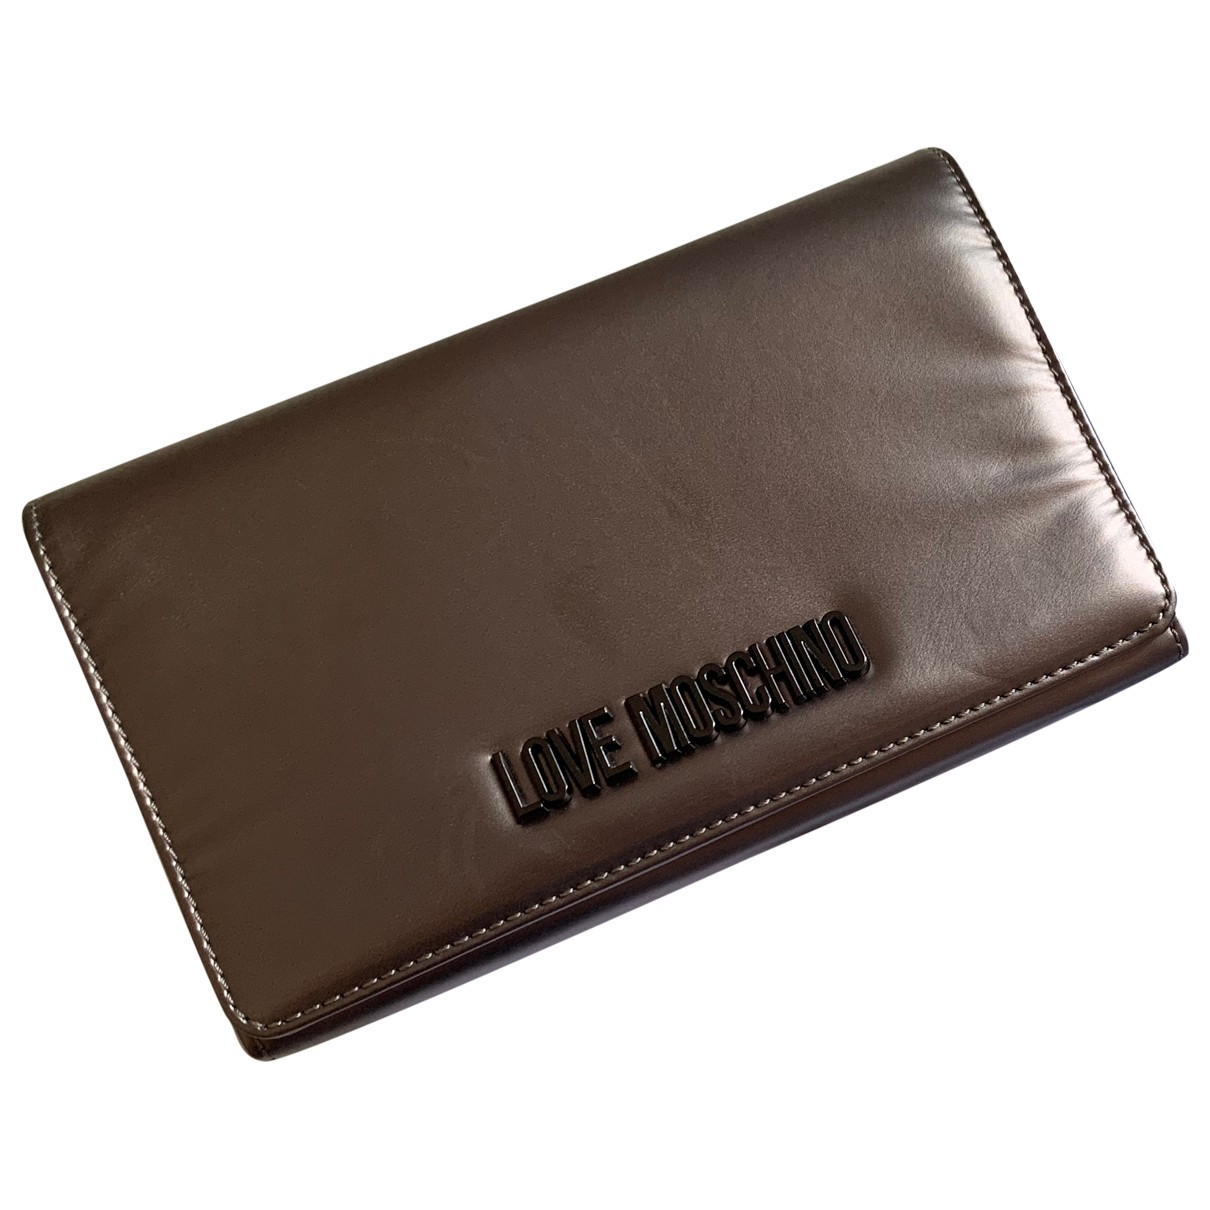 Moschino Love \N Metallic Clutch bag for Women \N